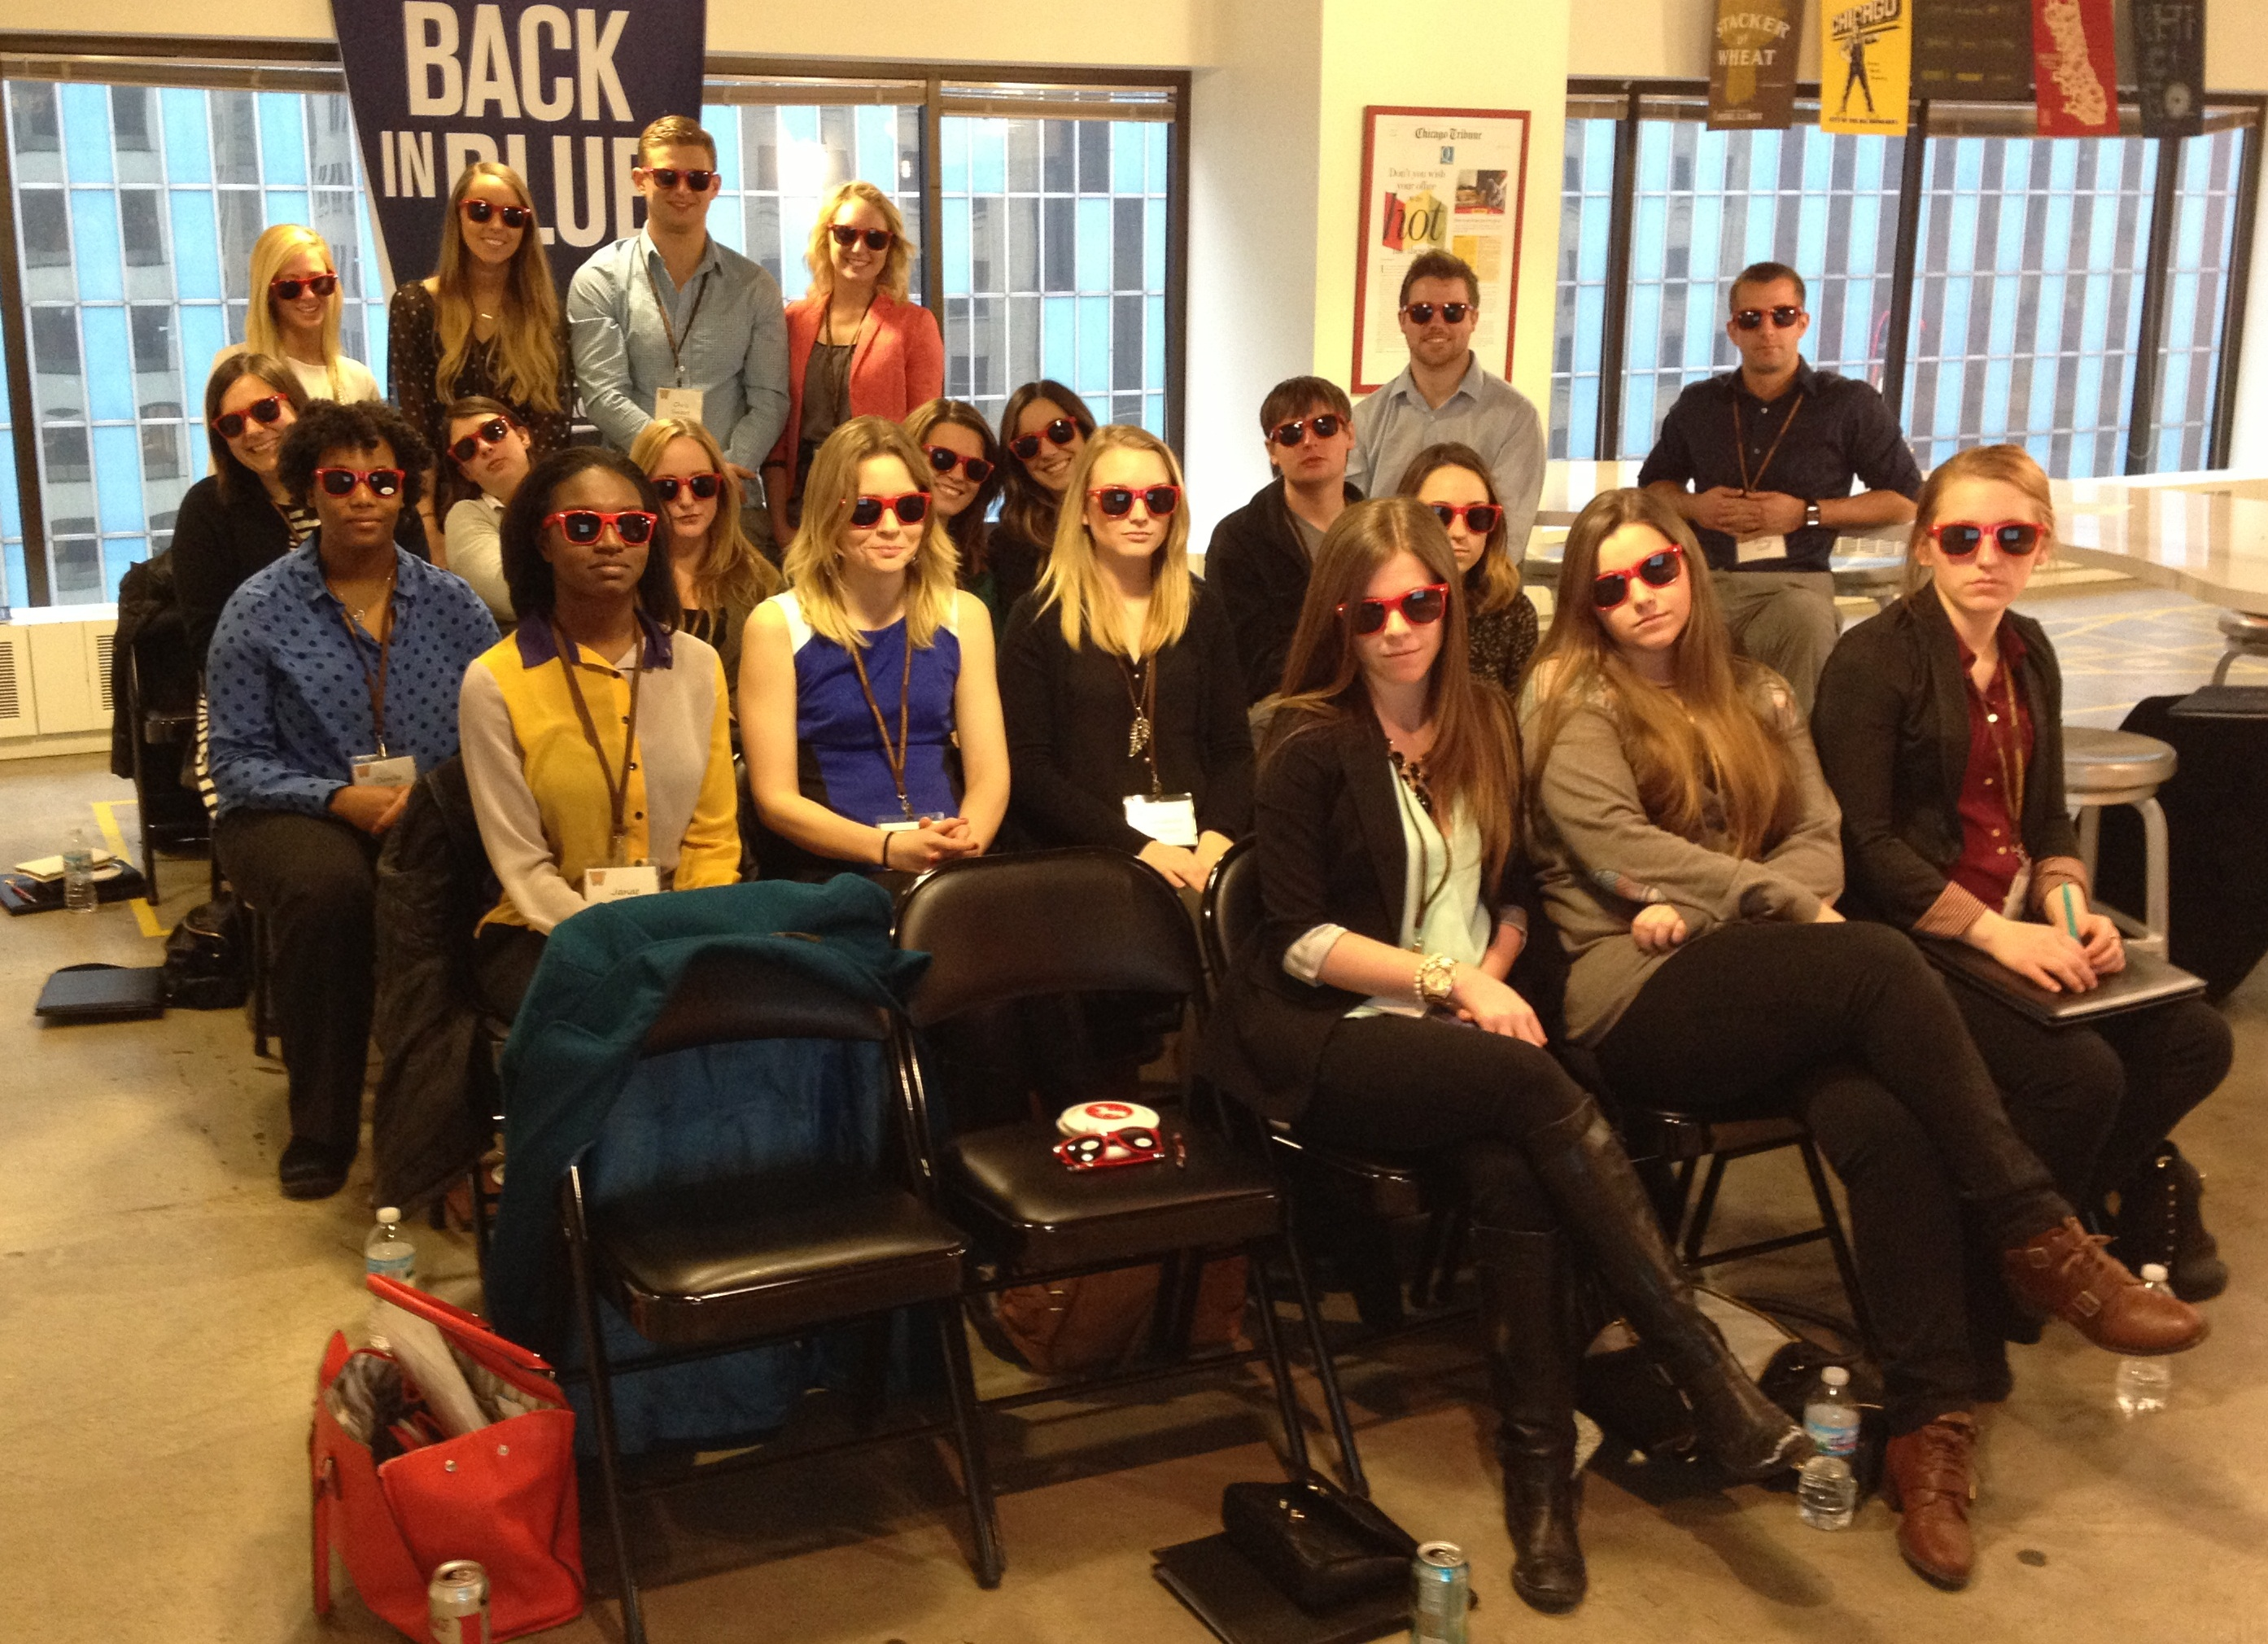 Cool sunglasses at Digitas